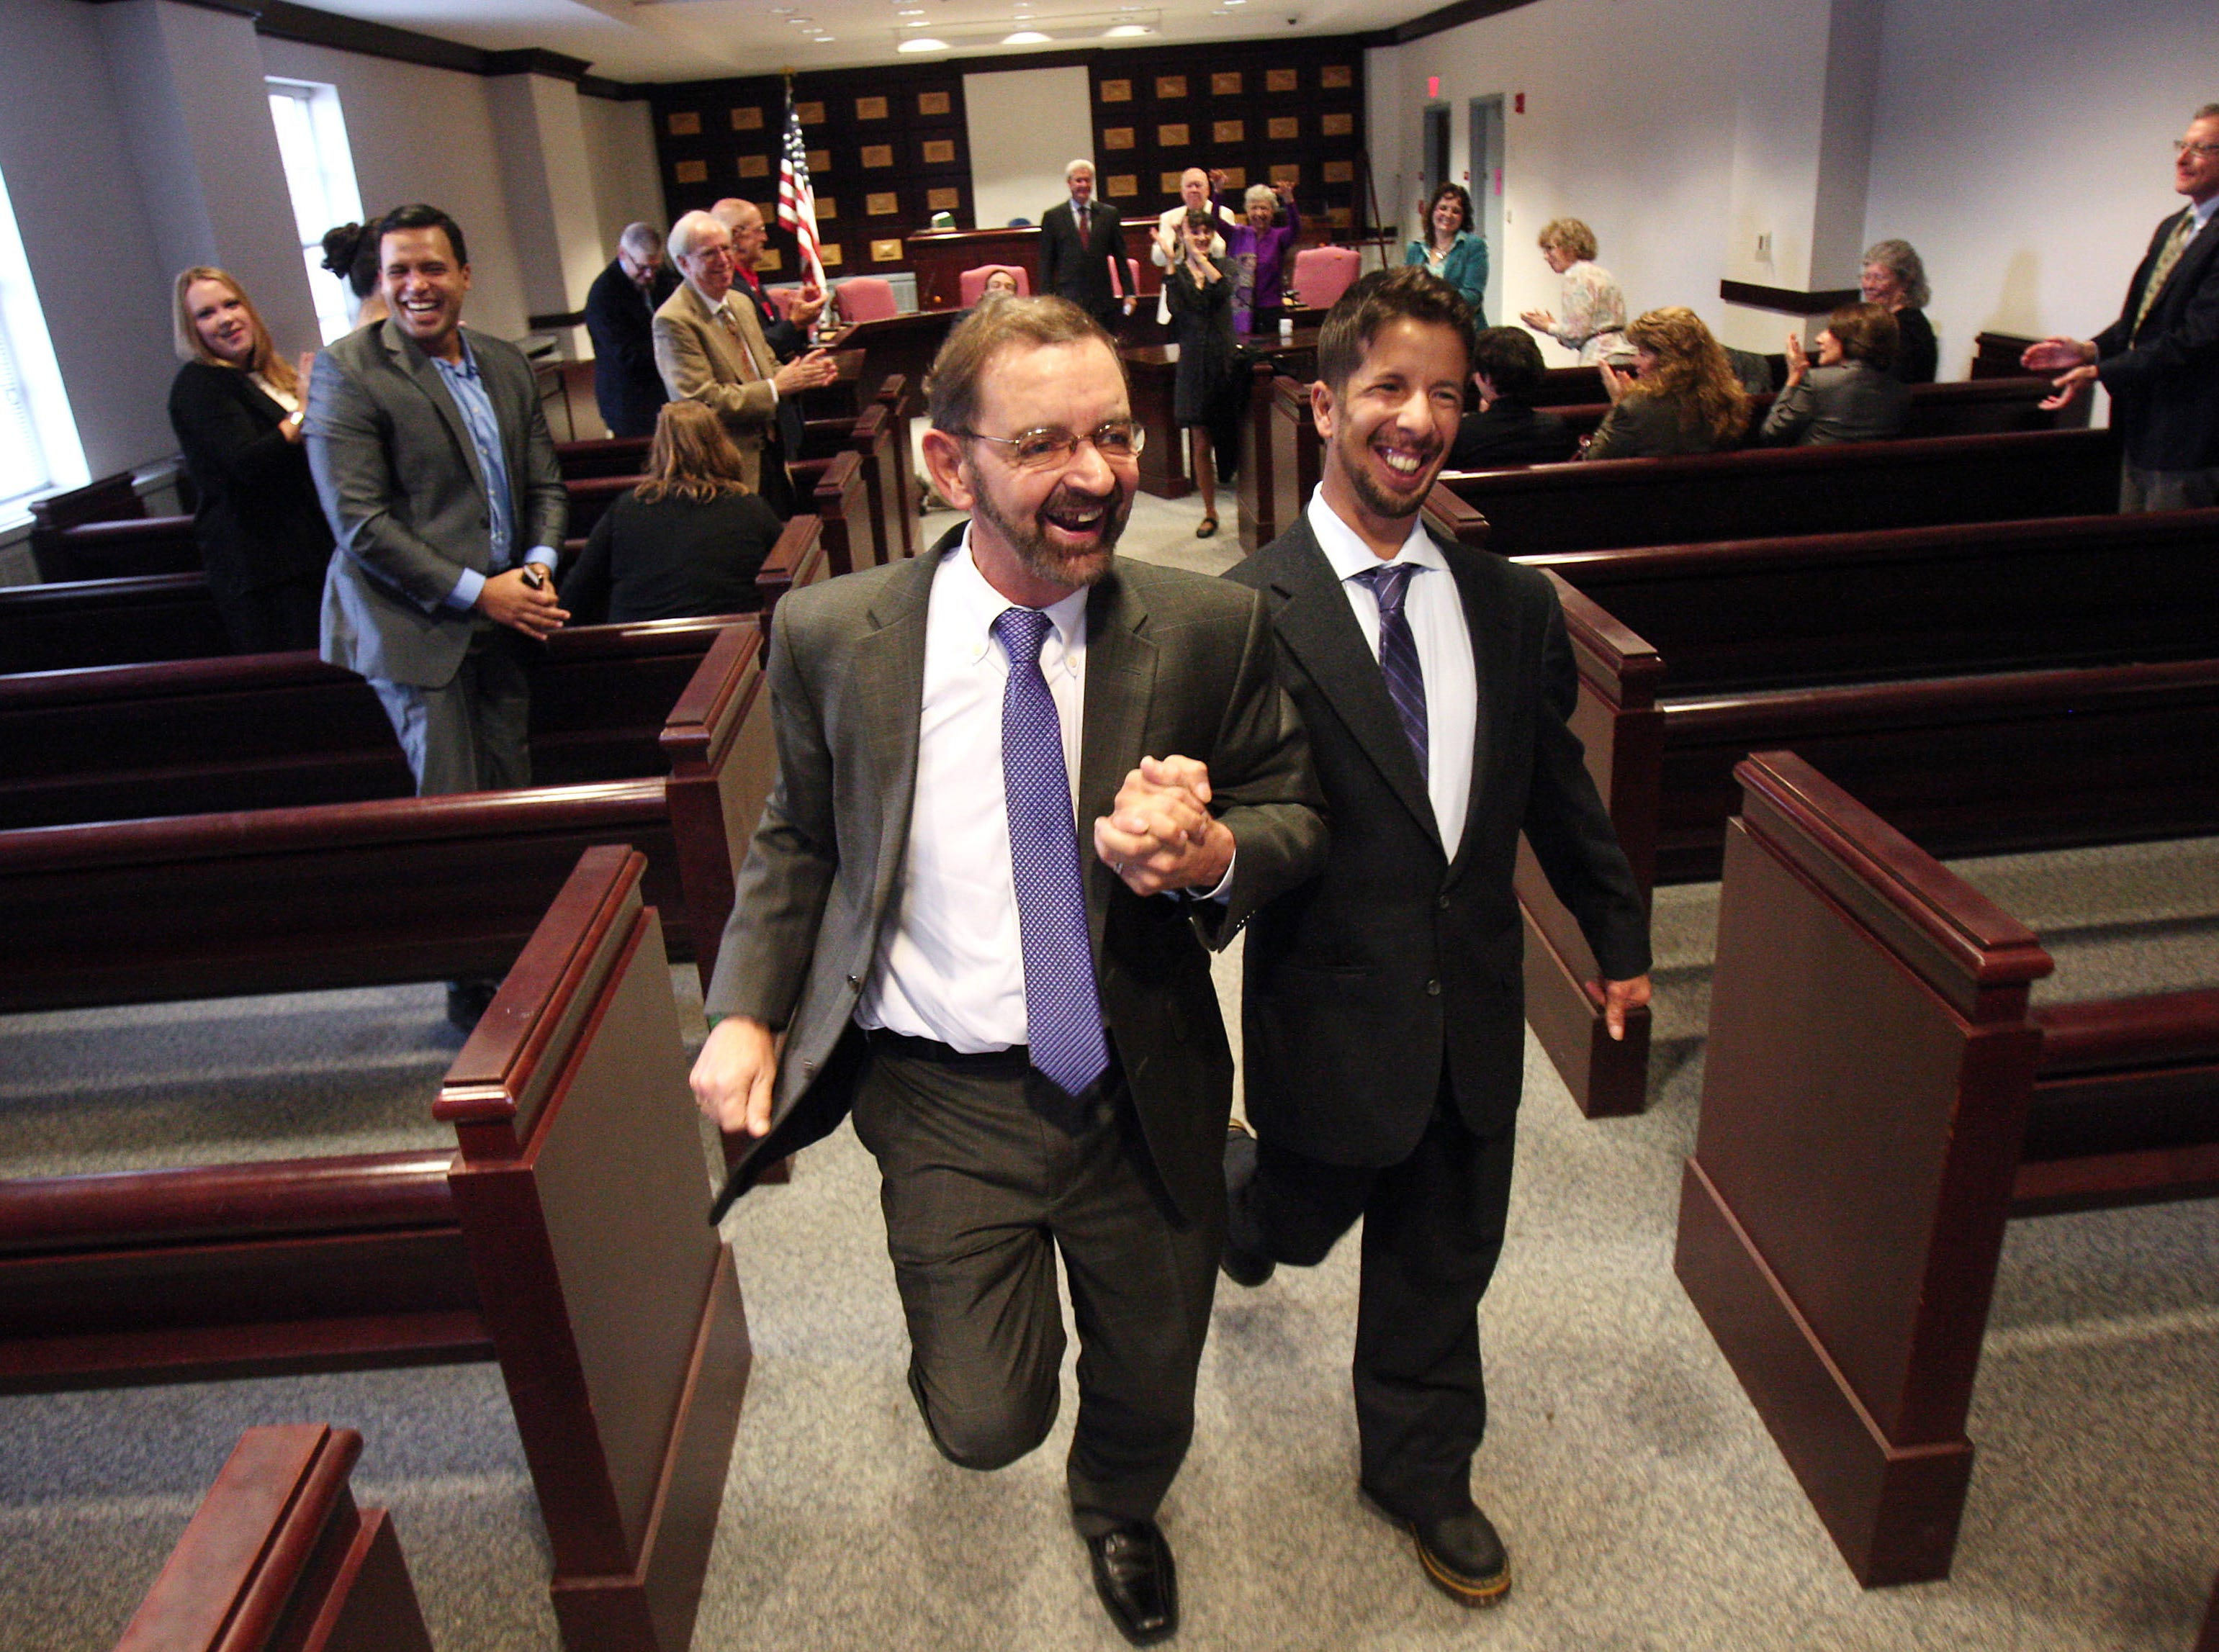 Robert Parker and Jorge Marques of Morristown run down the aisle of the council chambers in Morristown Town Hall after they were married by Mayor Tim Dougherty. Wednesday November 7, 2013, Morristown, NJ, Staff Photographer/Bob Karp